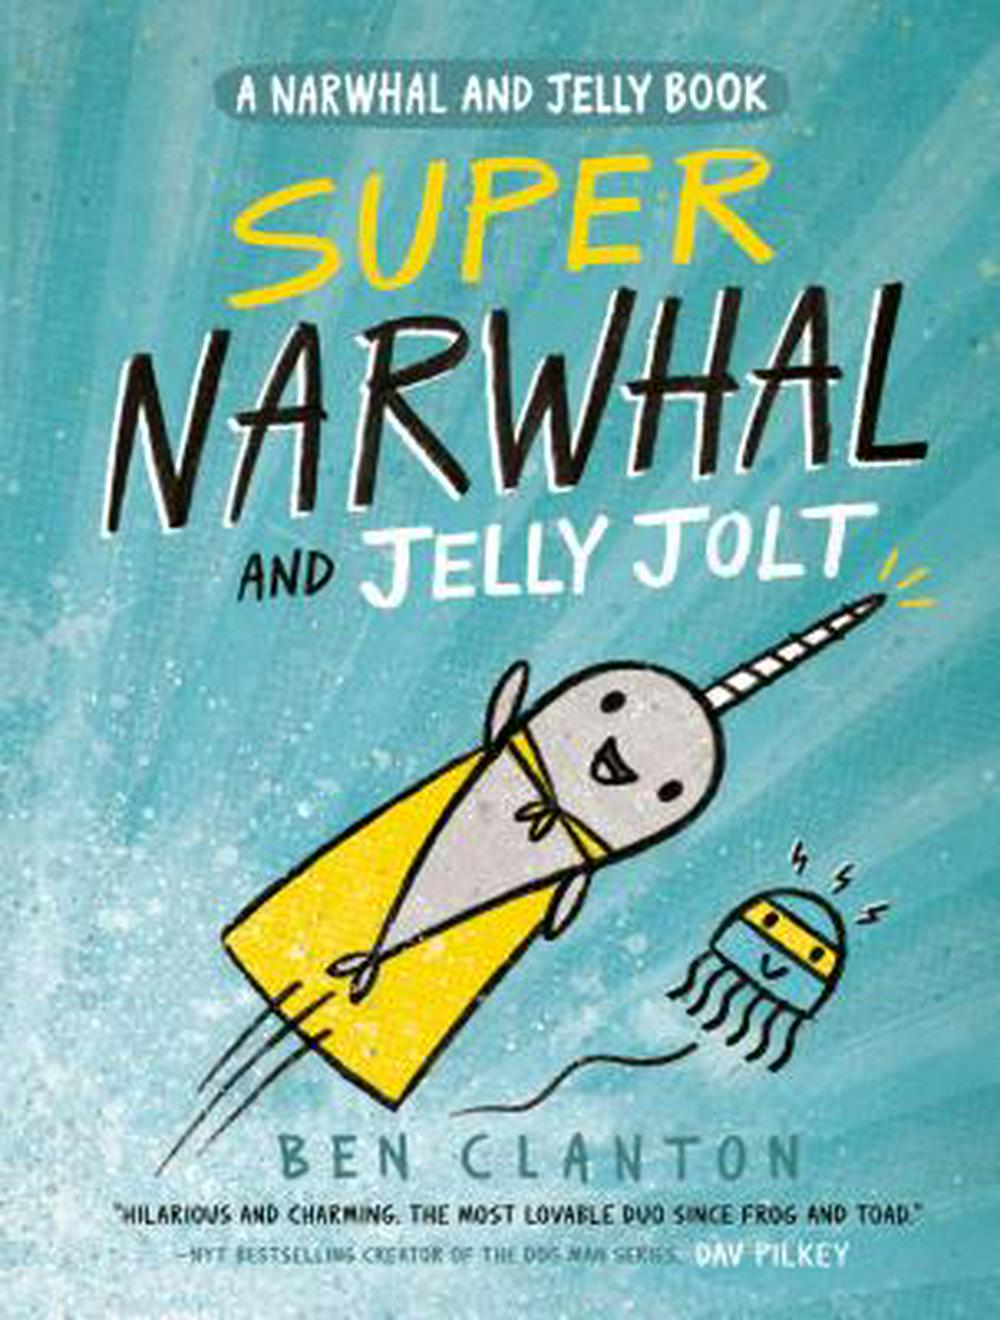 Super Narwhal and Jelly JoltA Narwhal and Jelly Book